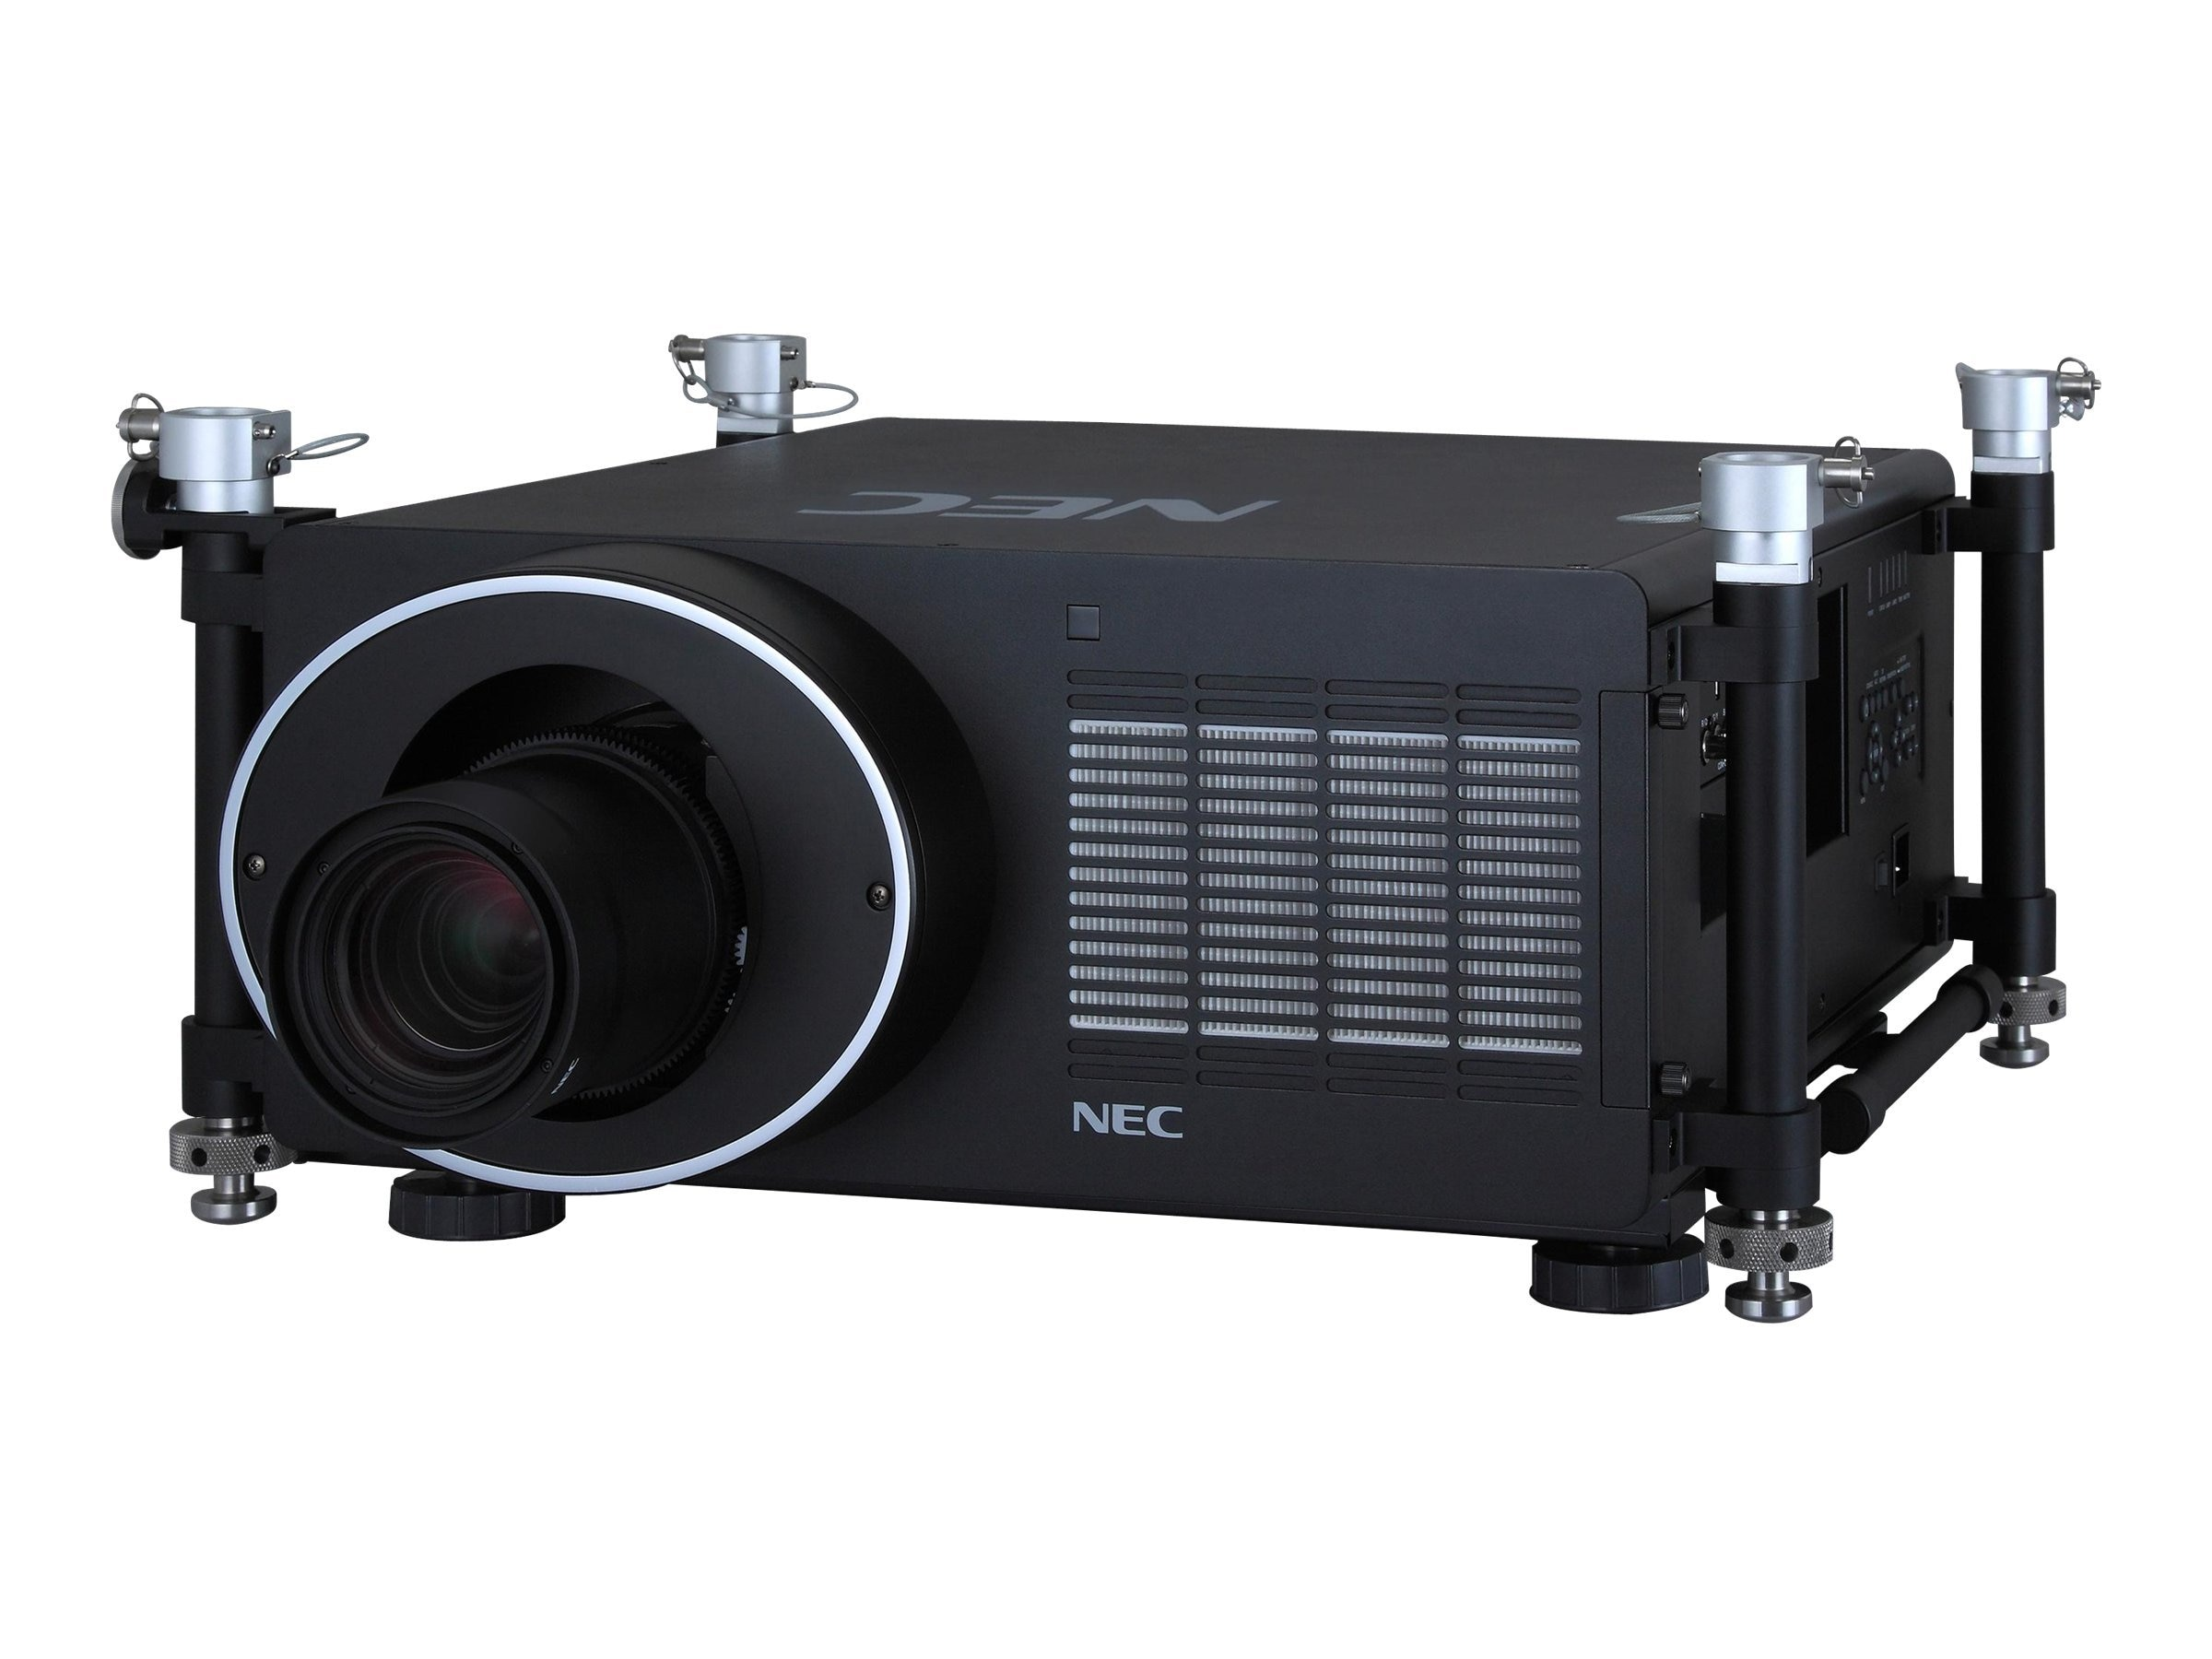 NEC NP-PH1000U DLP Professional Installation Projector, 11000 Lumens, NP-PH1000U, 13183379, Projectors